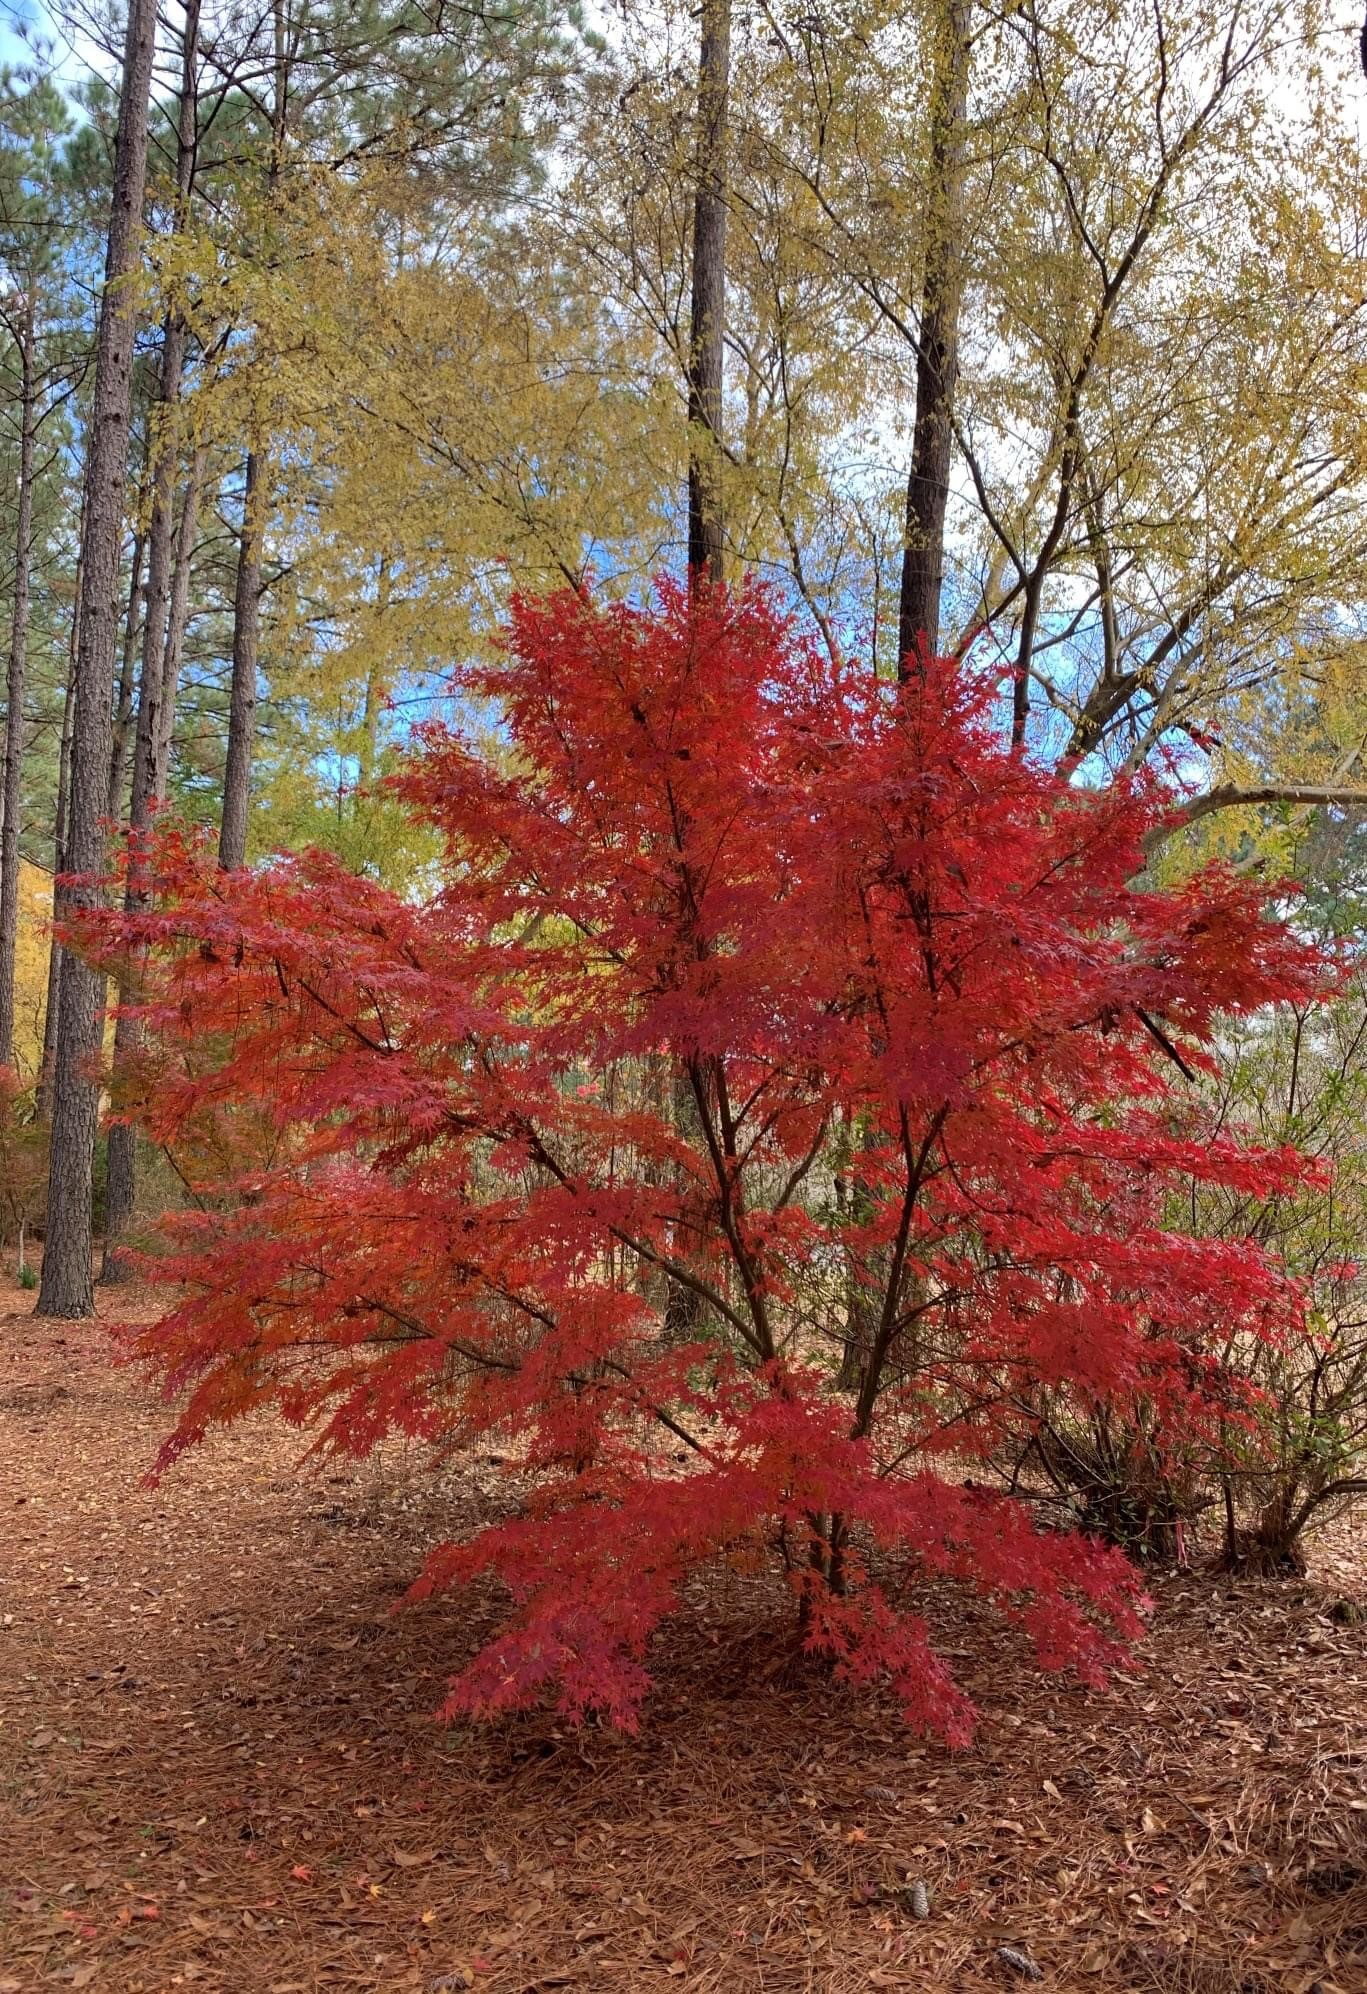 Japanese maples provide gorgeous fall foliage.